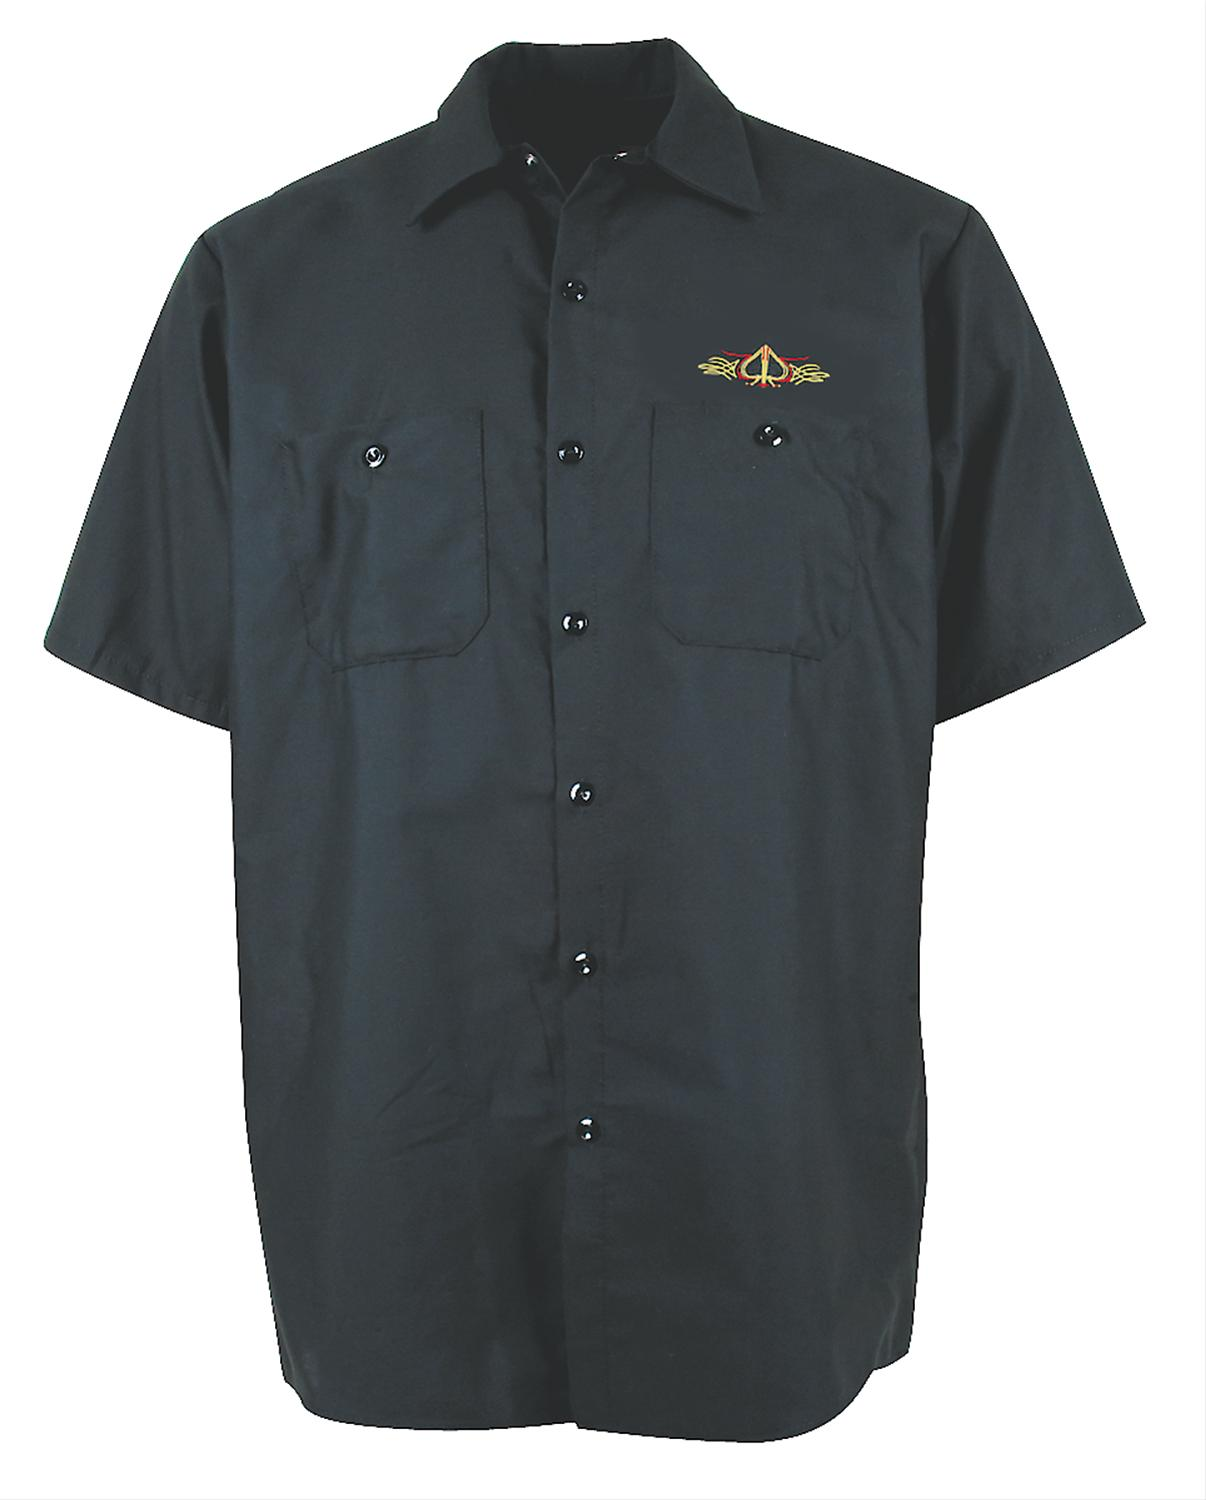 Ghh work shirt button down cotton polyester pinstripped for Polyester button up shirt